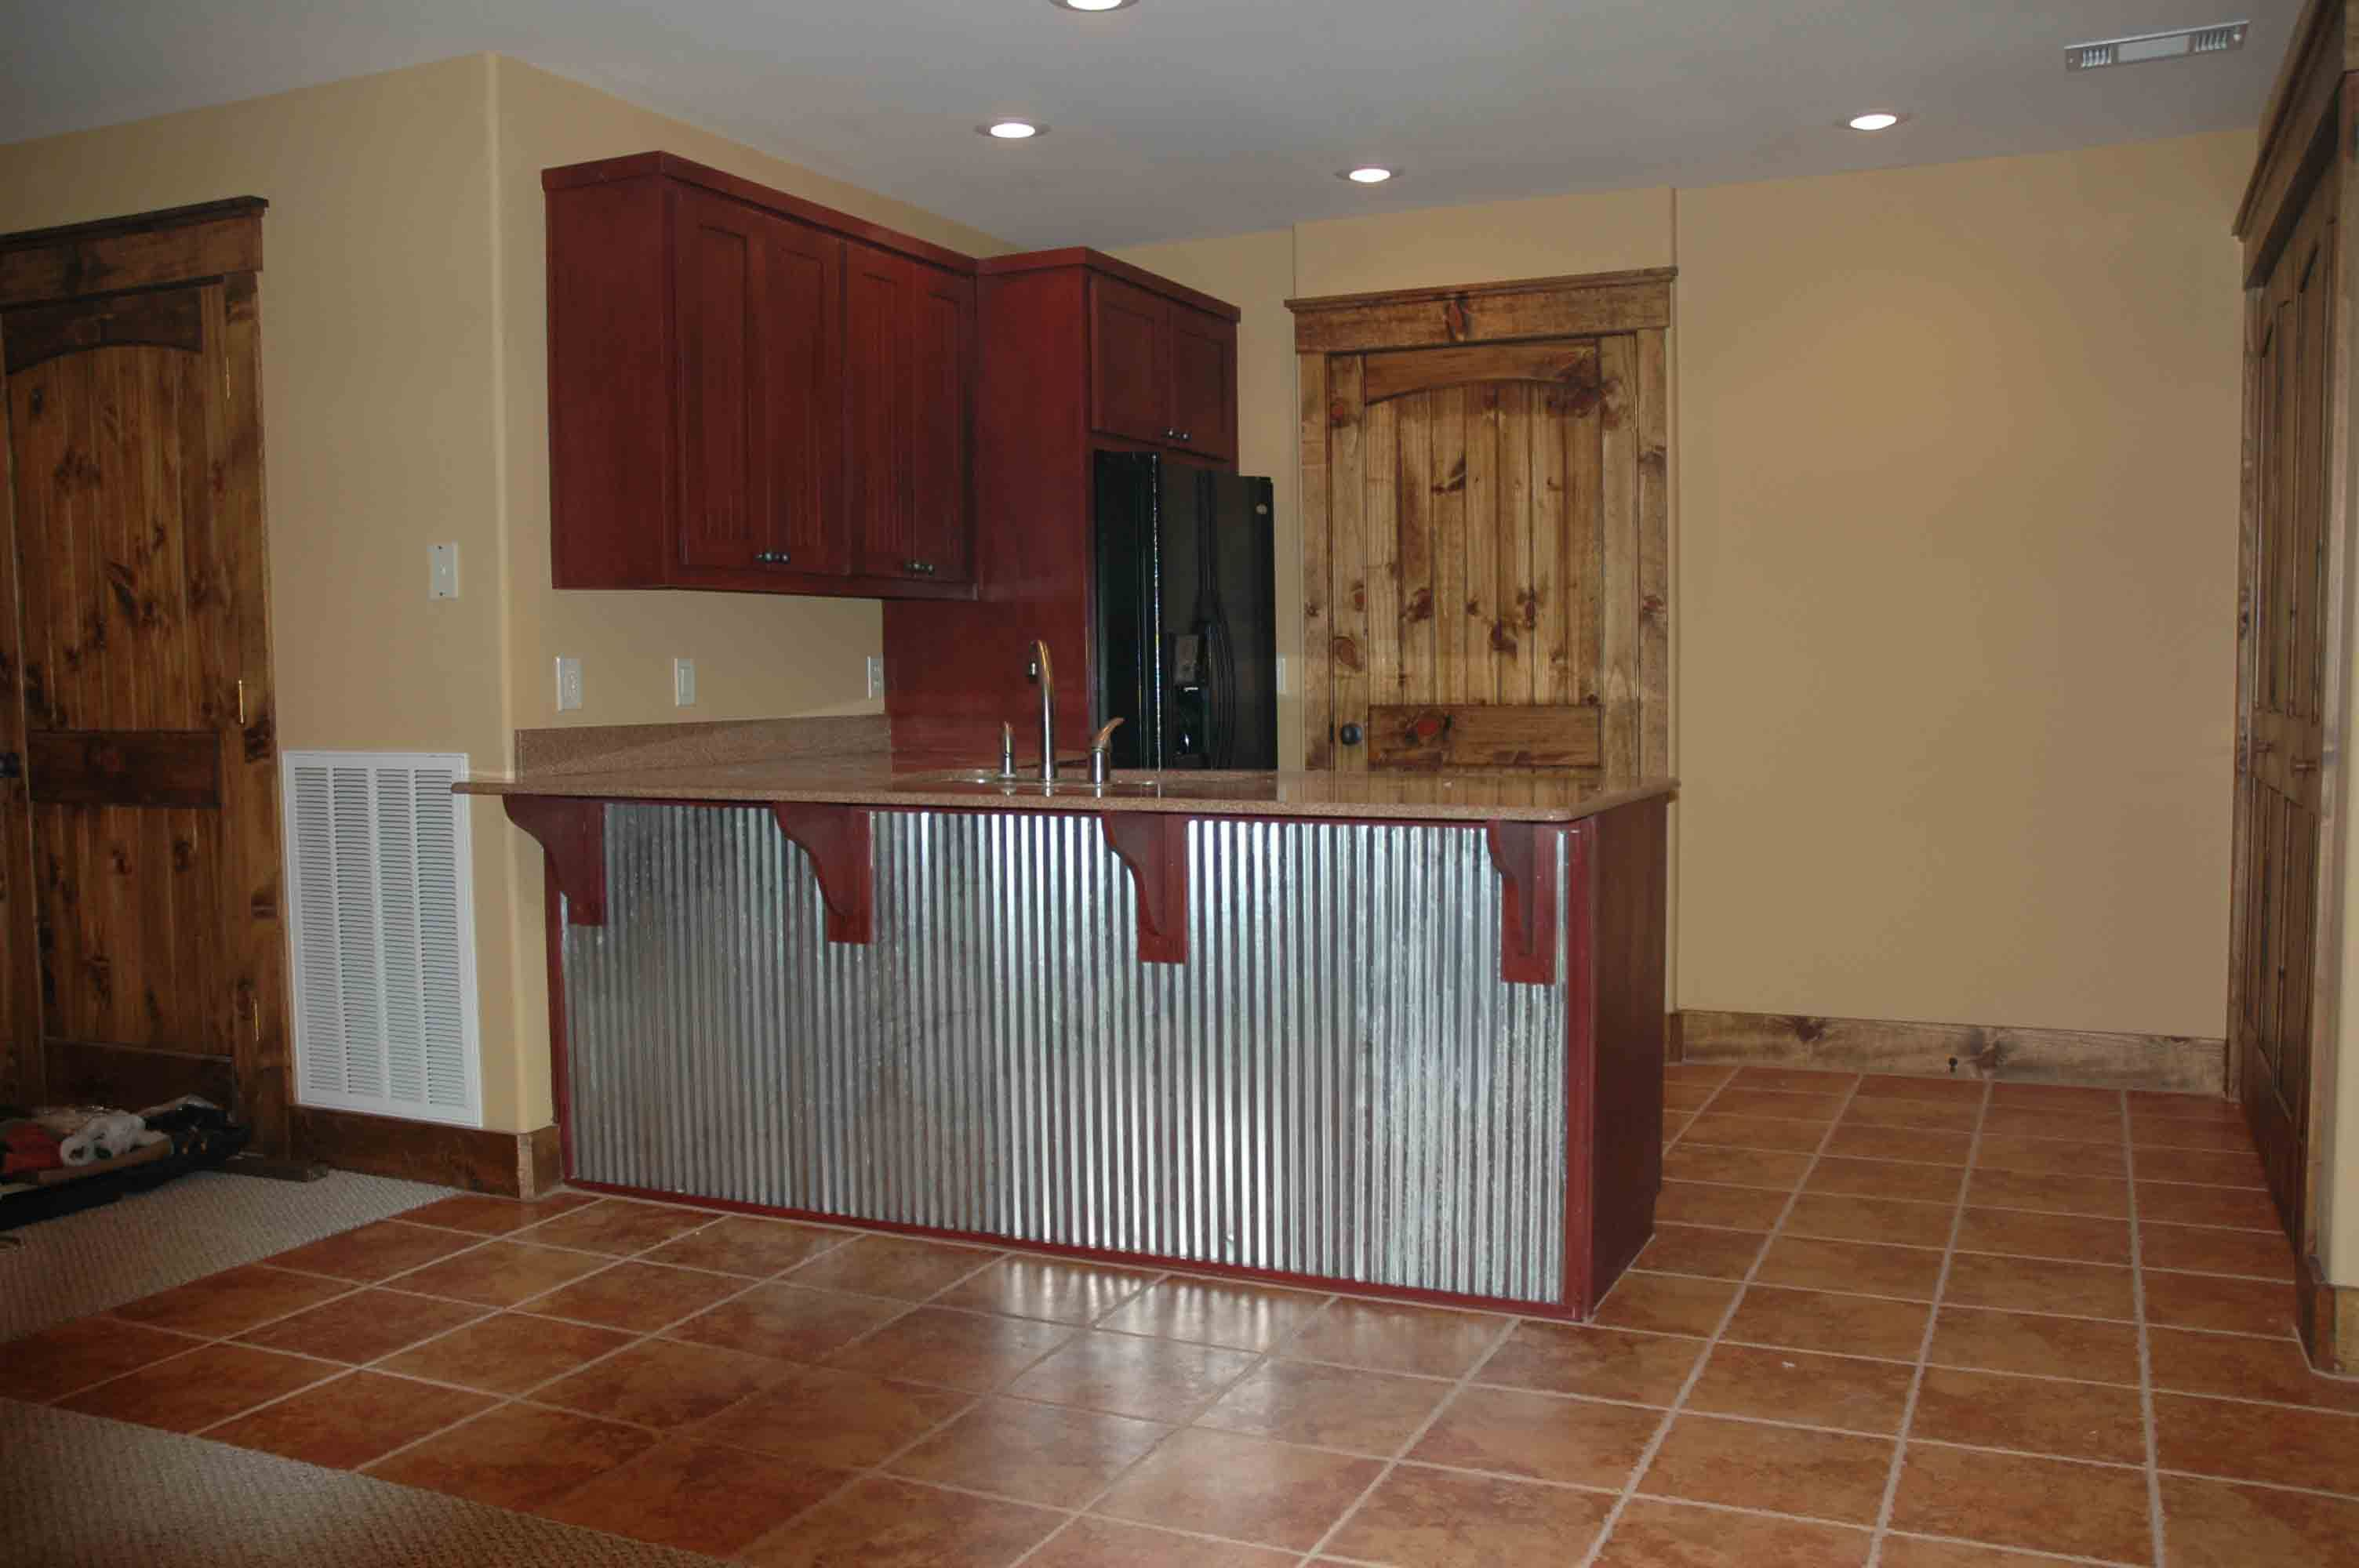 Corrugated Tin Kitchen Cabinets | This Bar Back Is Corrugated Metal.